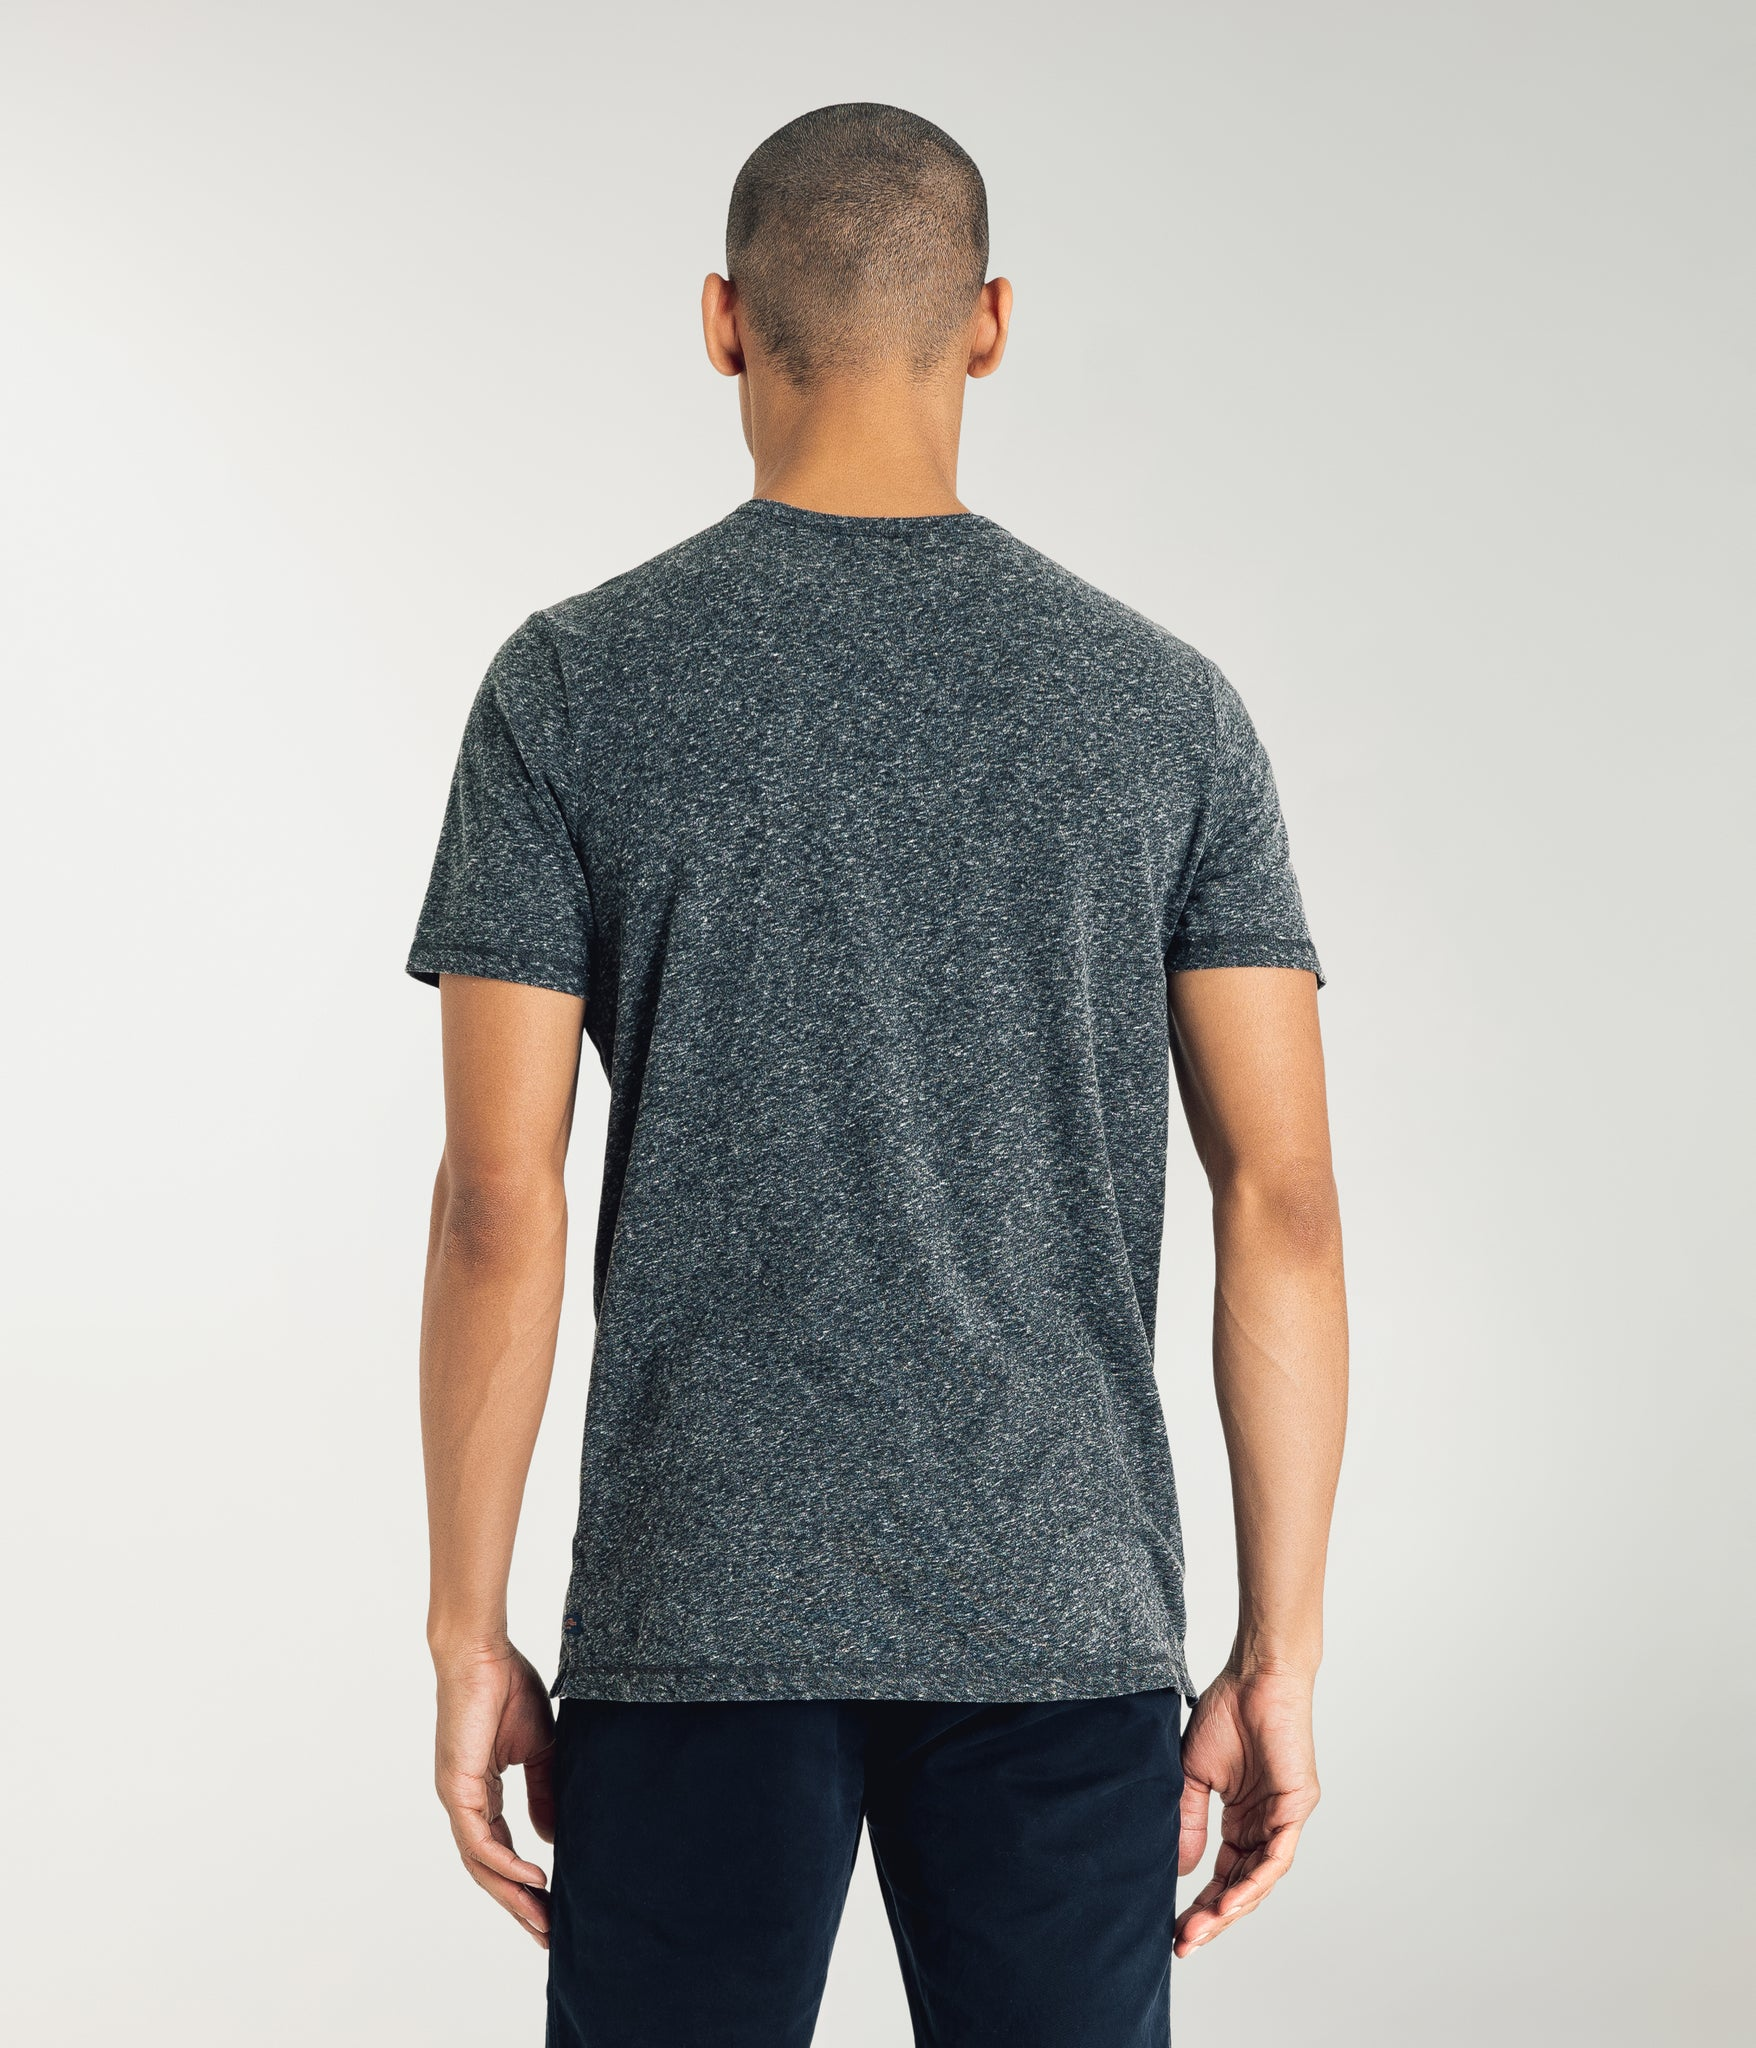 Heather Soft Jersey Henley - Charcoal Heather